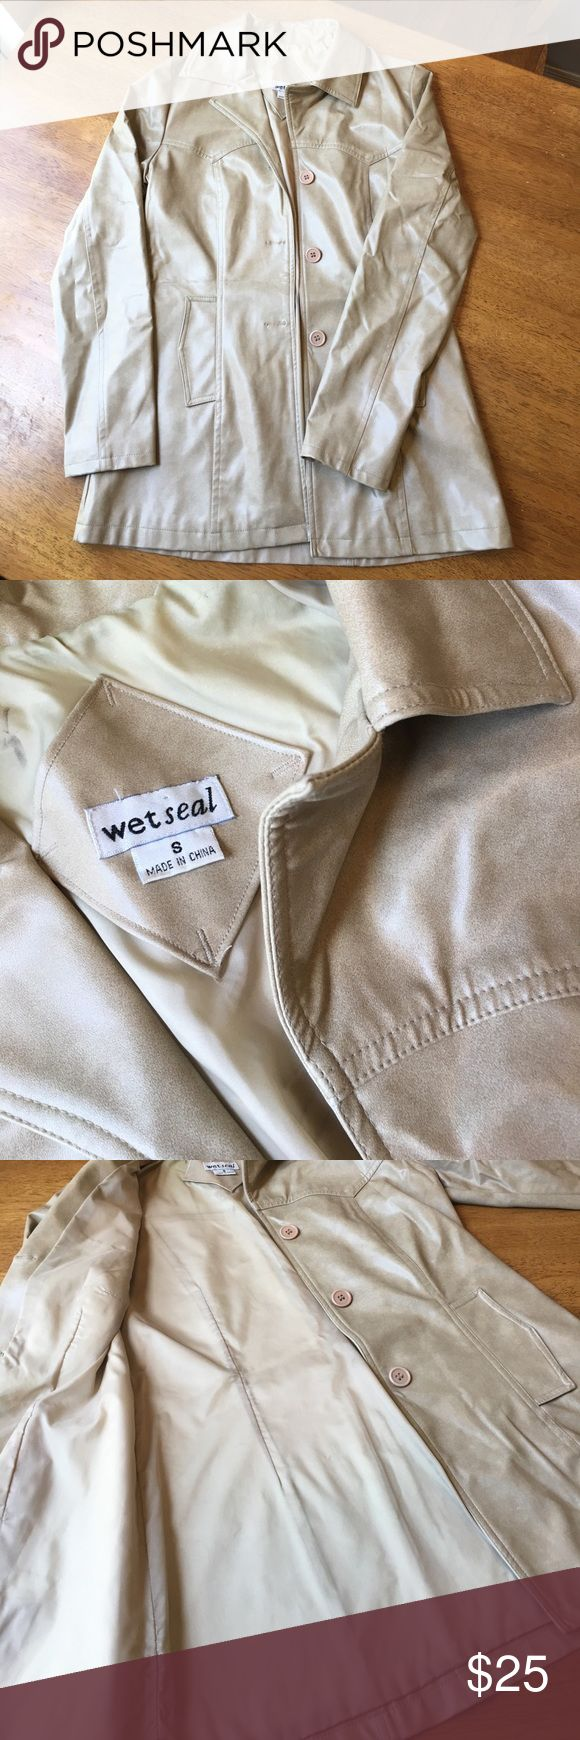 Wet Seal Button Down Rain Coat Wet Seal 100% Polyurethane Beige Button Down Rain Coat. Excellent Condition other than the small defects shown in the last picture. These small defects are very inconspicuous. They are located on the back collar region. Wet Seal Jackets & Coats Trench Coats